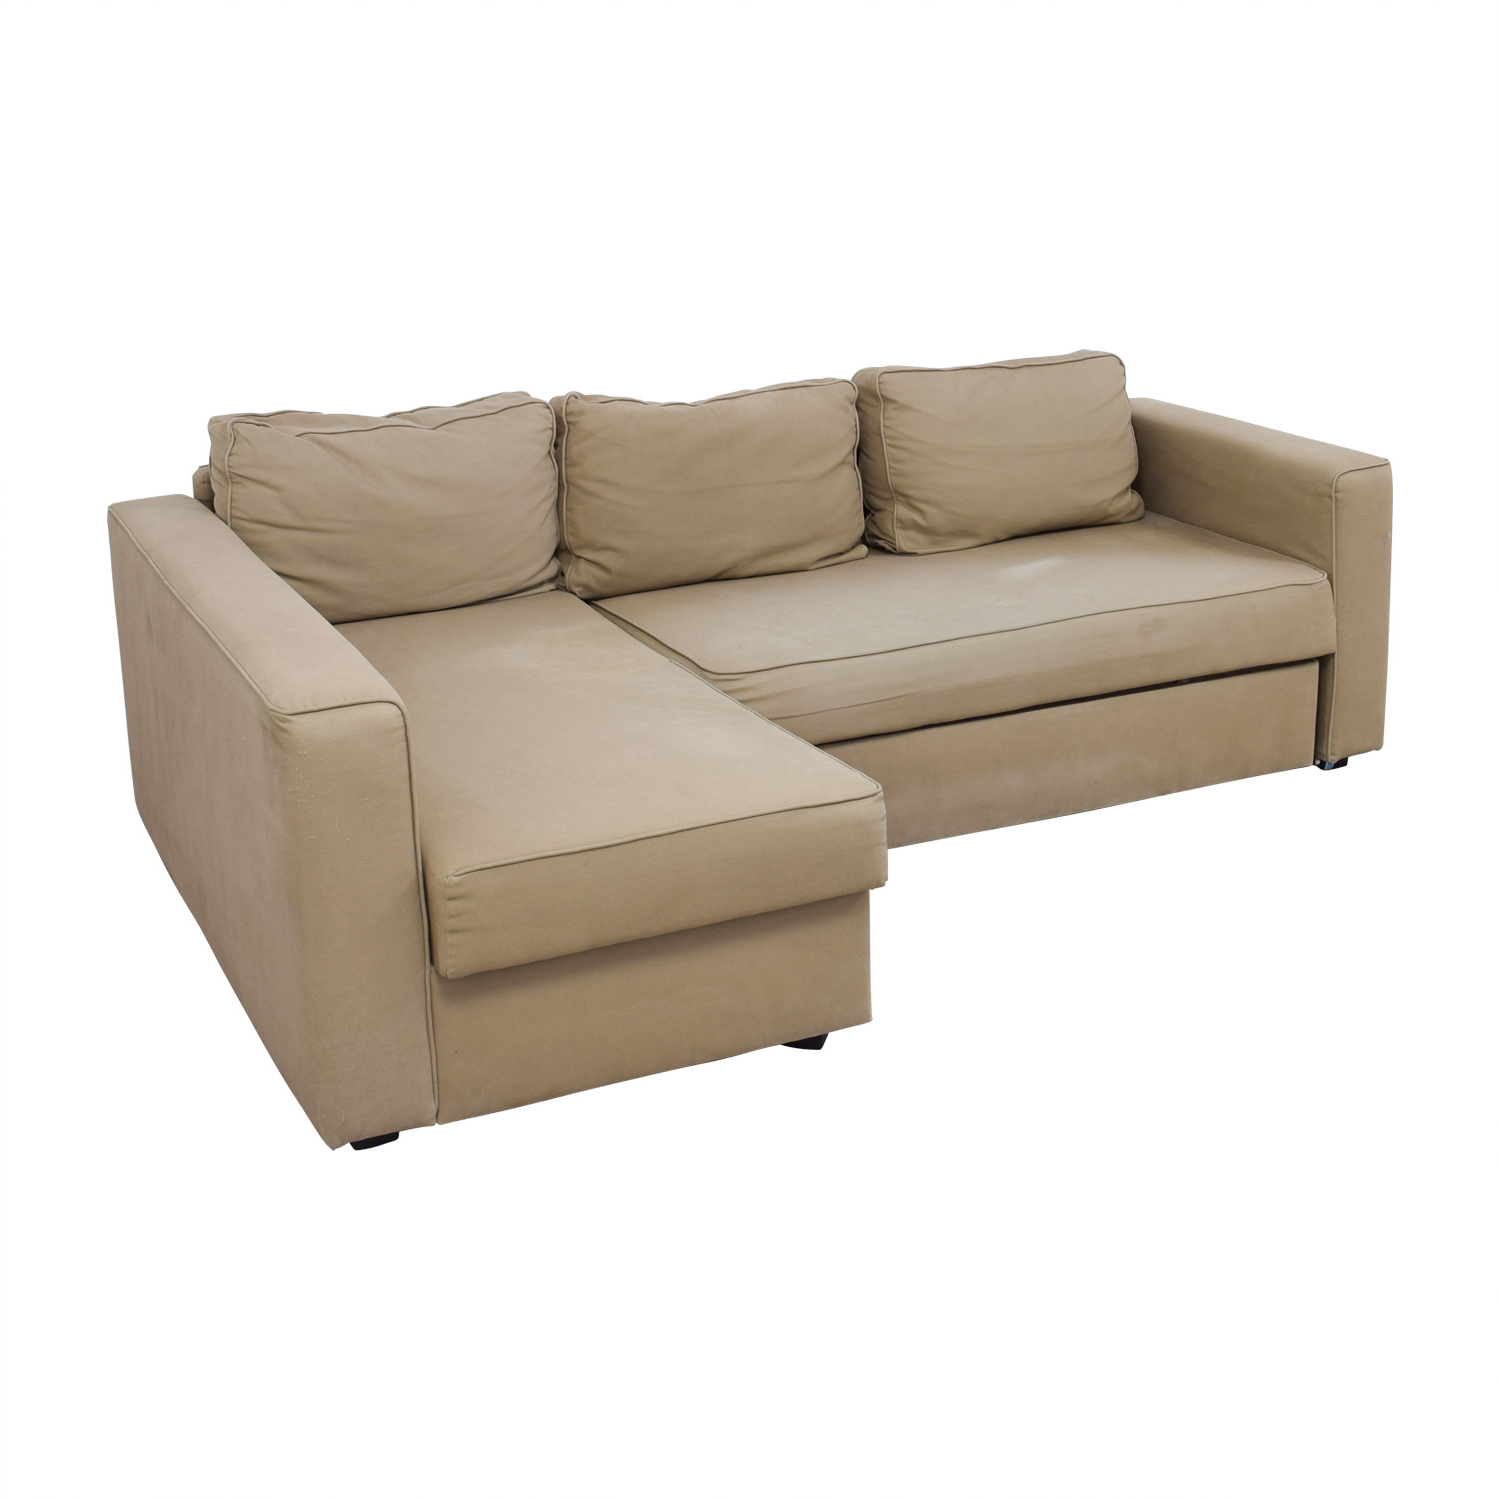 [%62% Off – Ikea Ikea Manstad Sectional Sofa Bed With Throughout Current Liberty Sectional Futon Sofas With Storage|Liberty Sectional Futon Sofas With Storage Intended For Favorite 62% Off – Ikea Ikea Manstad Sectional Sofa Bed With|Most Popular Liberty Sectional Futon Sofas With Storage In 62% Off – Ikea Ikea Manstad Sectional Sofa Bed With|Most Up To Date 62% Off – Ikea Ikea Manstad Sectional Sofa Bed With Inside Liberty Sectional Futon Sofas With Storage%] (View 21 of 25)